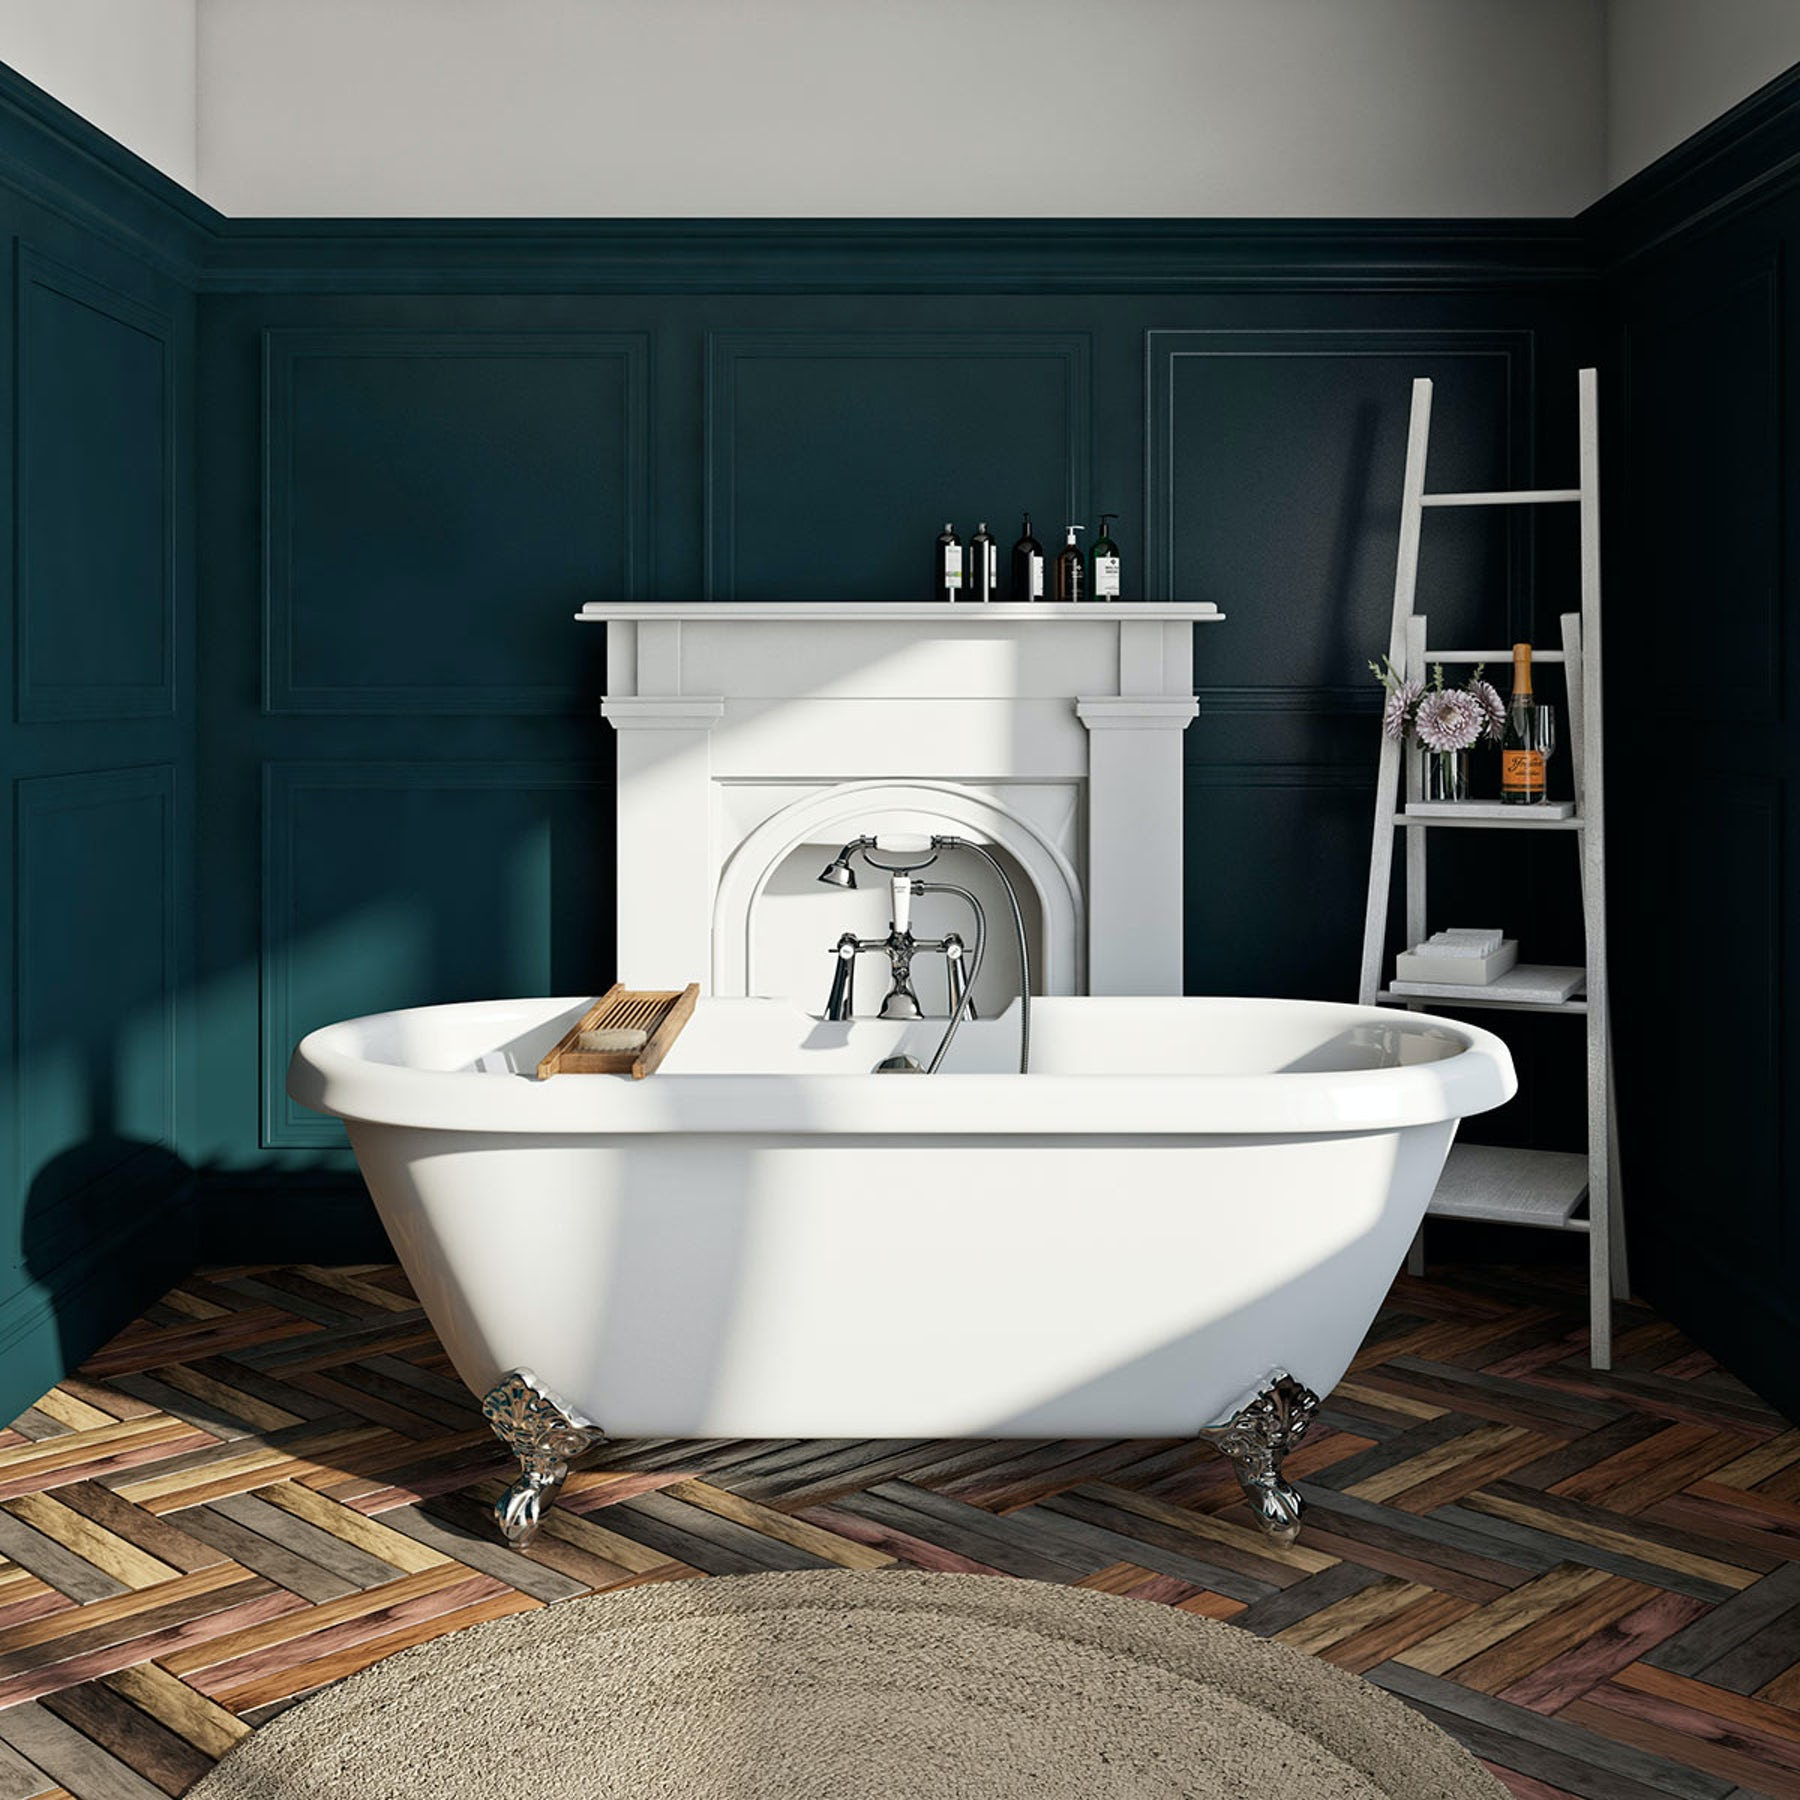 Orchard Dulwich roll top freestanding bath with chrome claw feet